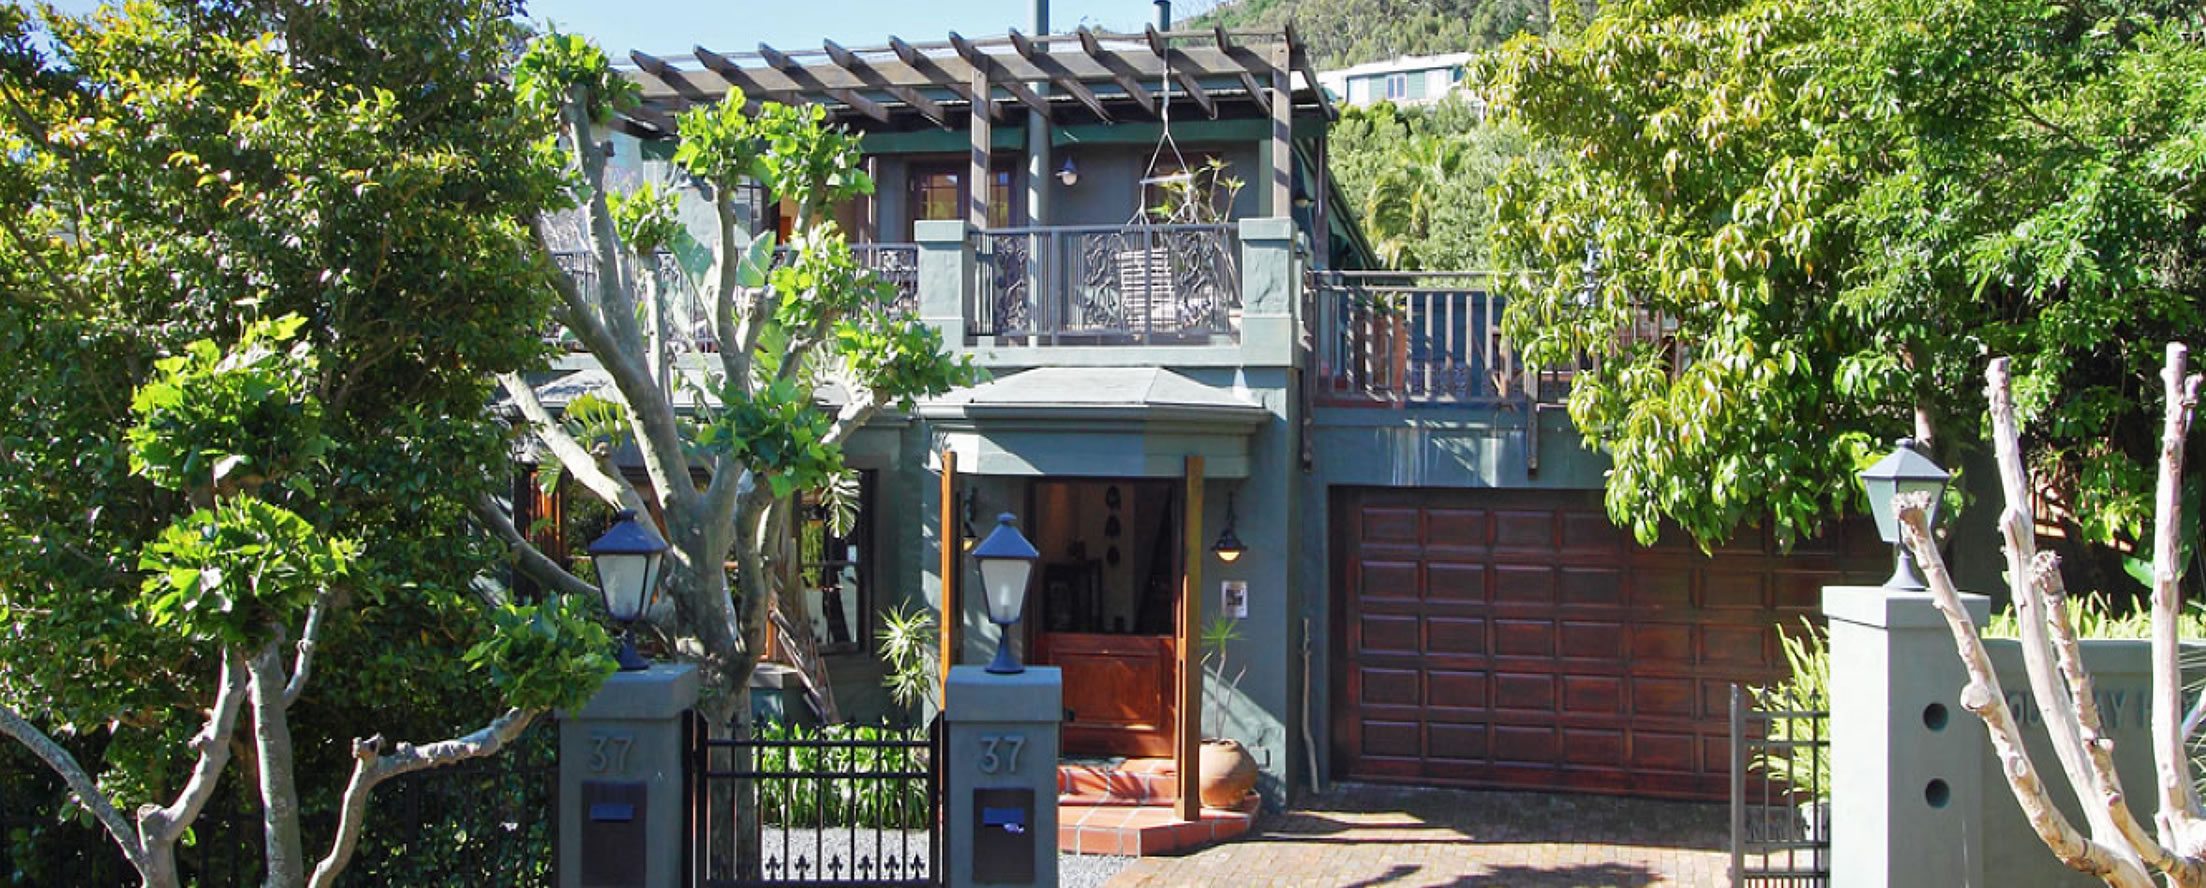 Guesthouse Entrance - The Hout Bay Hideaway